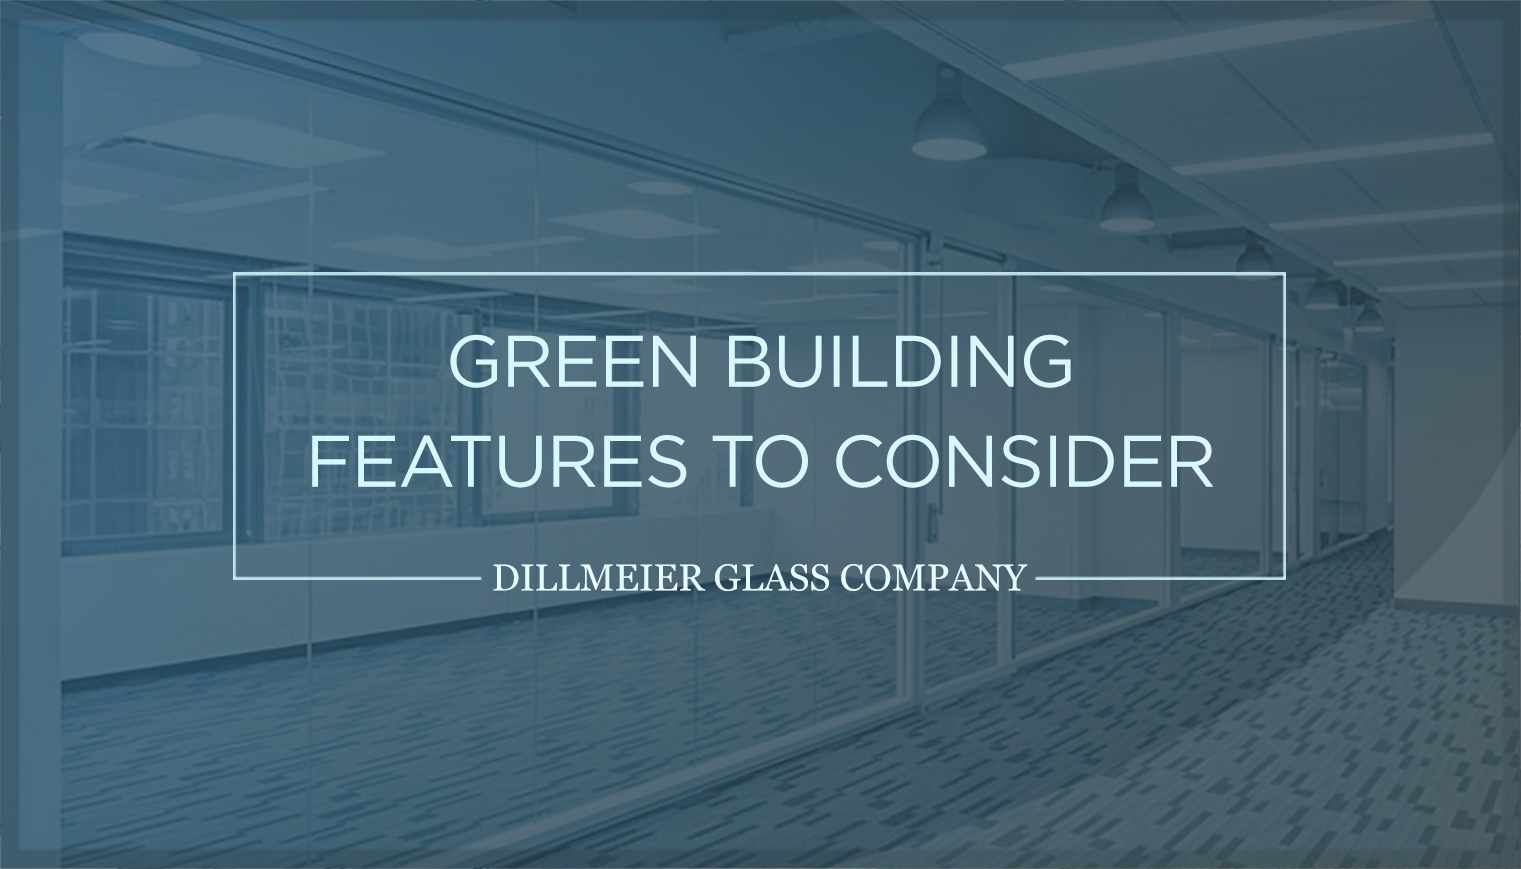 Green Building Features to Consider